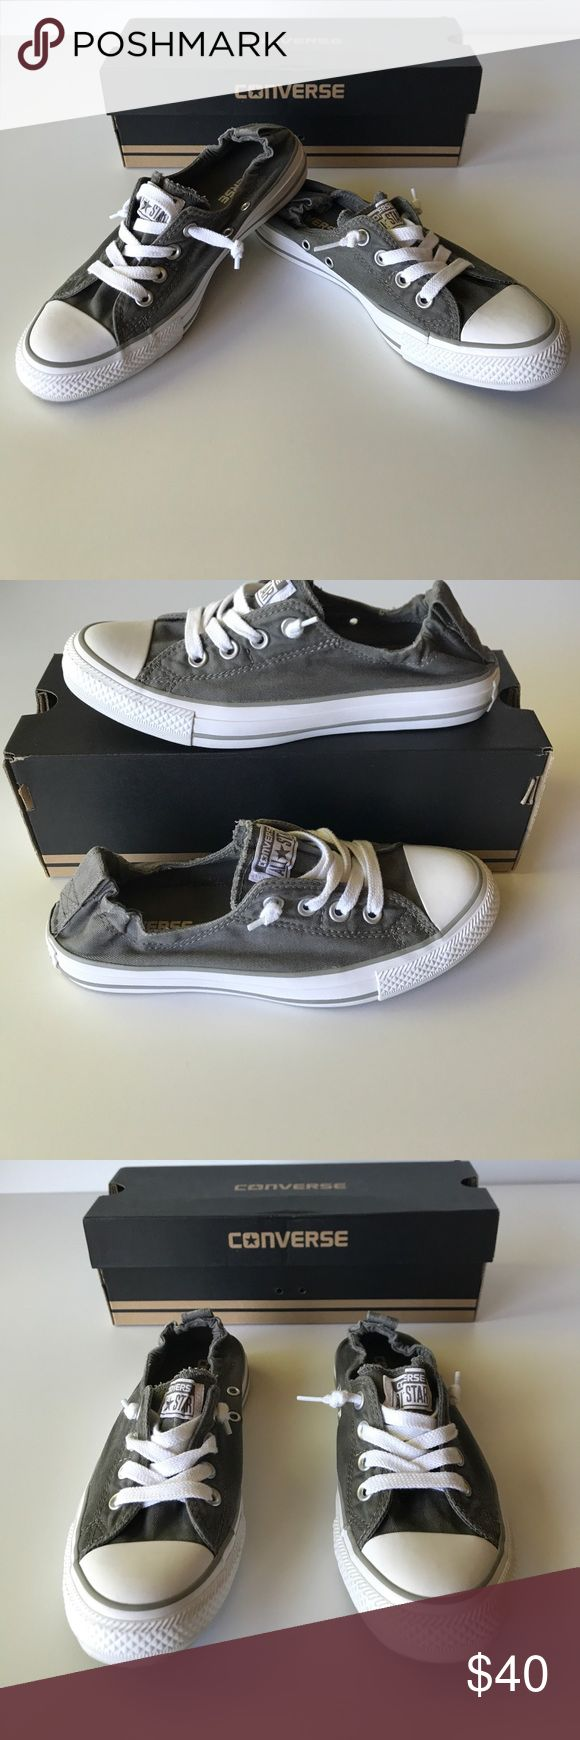 Converse Chuck Taylors  Gray - Womens Size 7 Converse Chuck Taylors/ Shoreline Charcoal Gray and White. NWT and box. Womens Size 7. Converse Shoes Sneakers